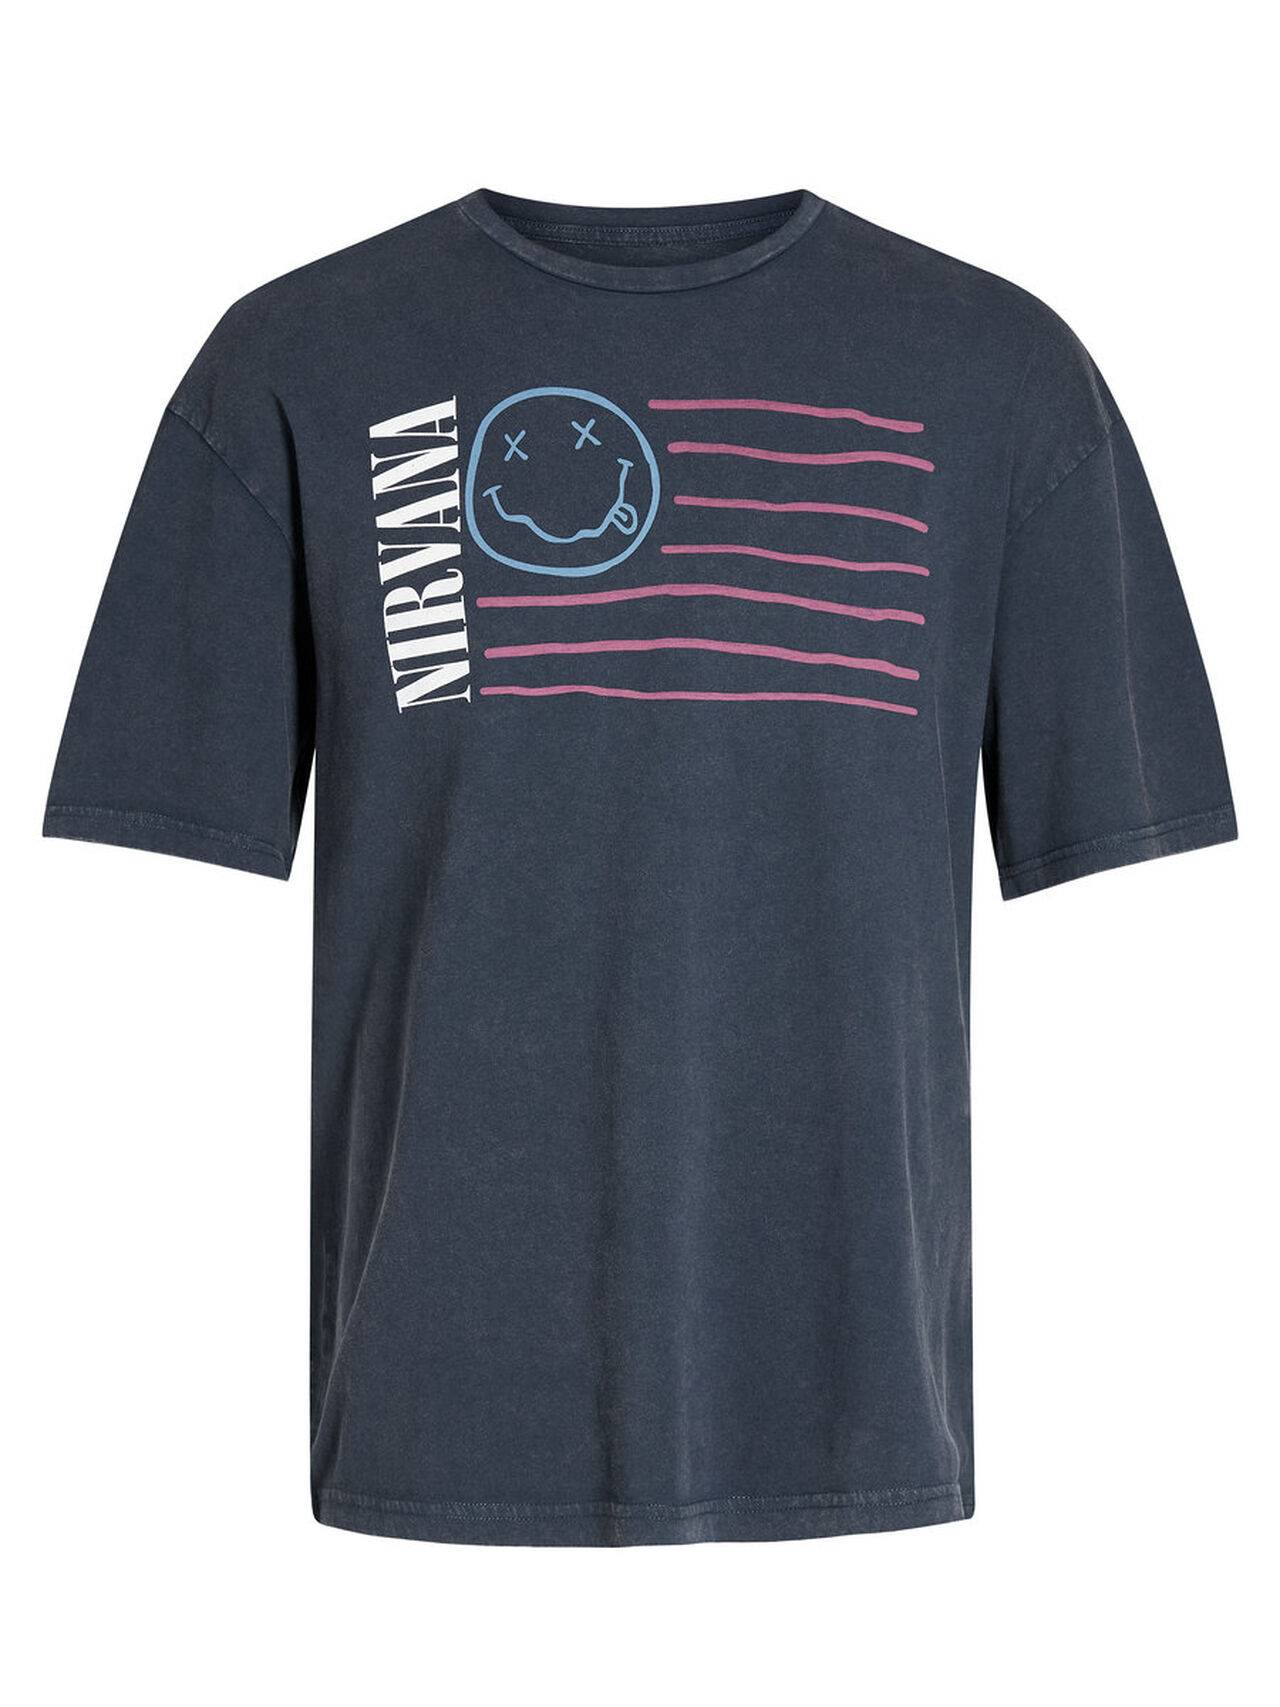 JACK & JONES Nirvana T-shirt Men Blue TotalEclipse